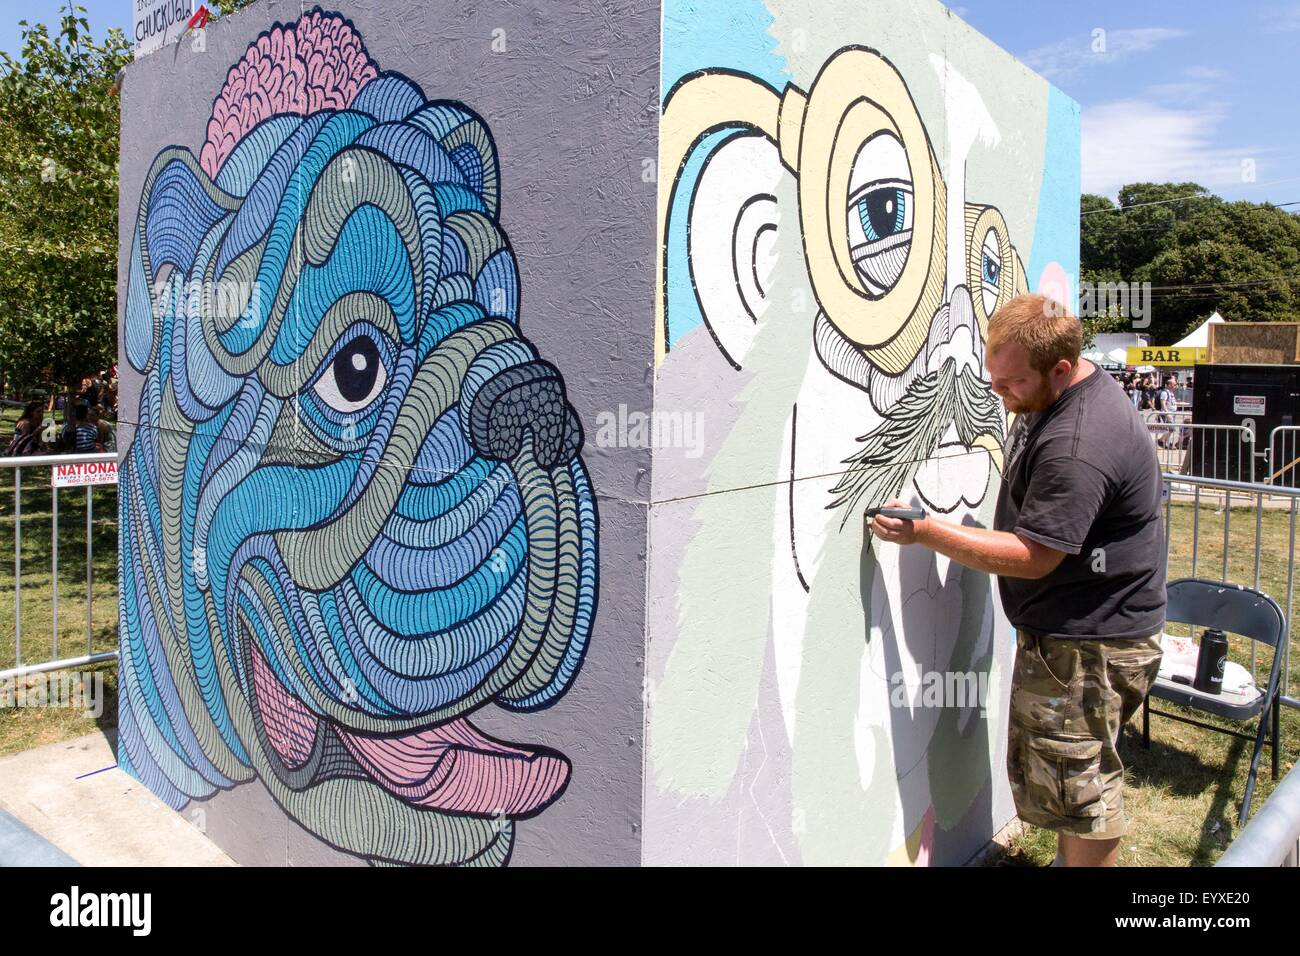 Chicago, Illinois, USA. 2nd Aug, 2015. An artist creates a mural in Grant Park during the Lollapalooza Music Festival - Stock Image